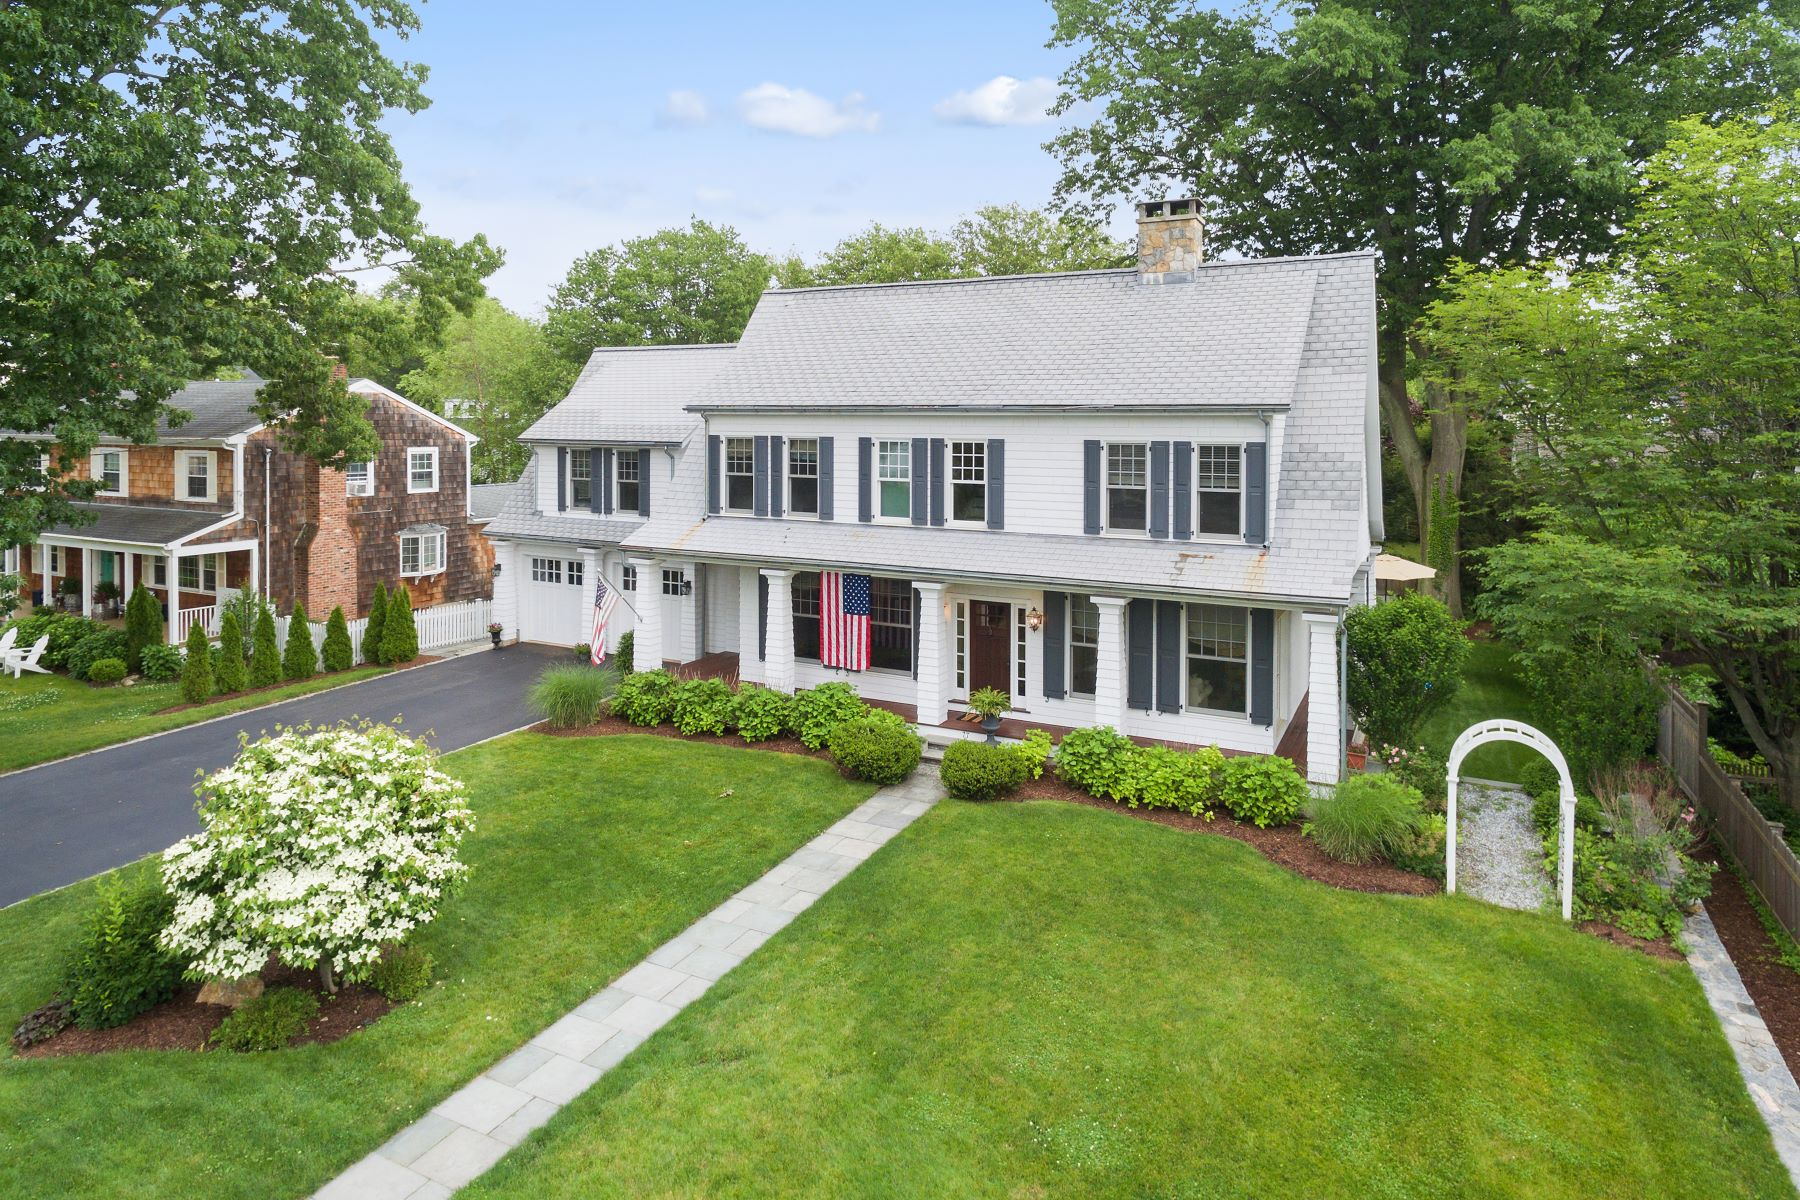 Single Family Homes for Sale at Beach Area Classic 77 Fern Street, Fairfield, Connecticut 06824 United States